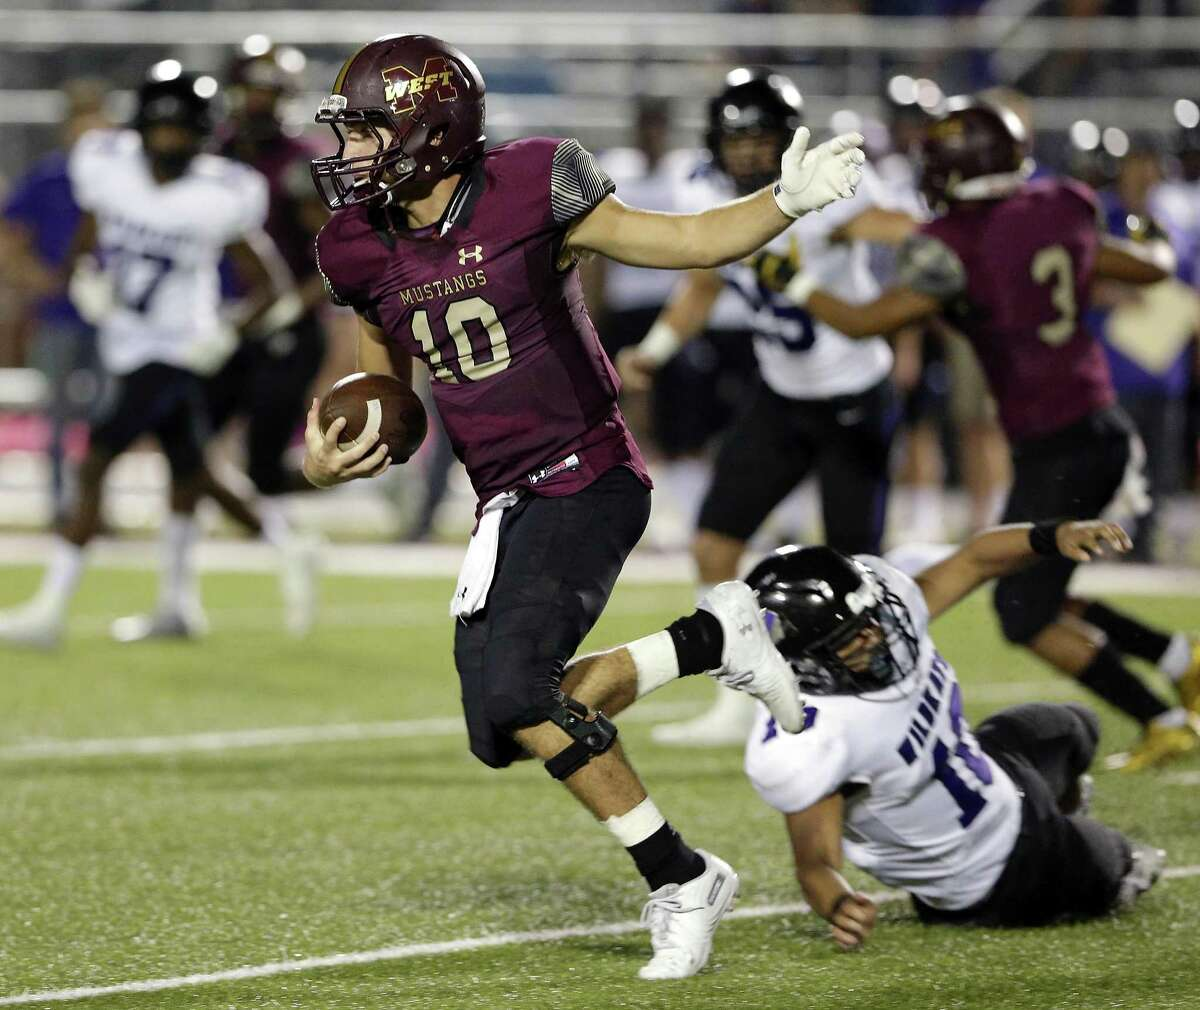 Magnolia West's John Matocha slips the tackle attempt by Willis' Jesus Villeda (10) during the first half of their game at Magnolia West Friday in Magnolia.